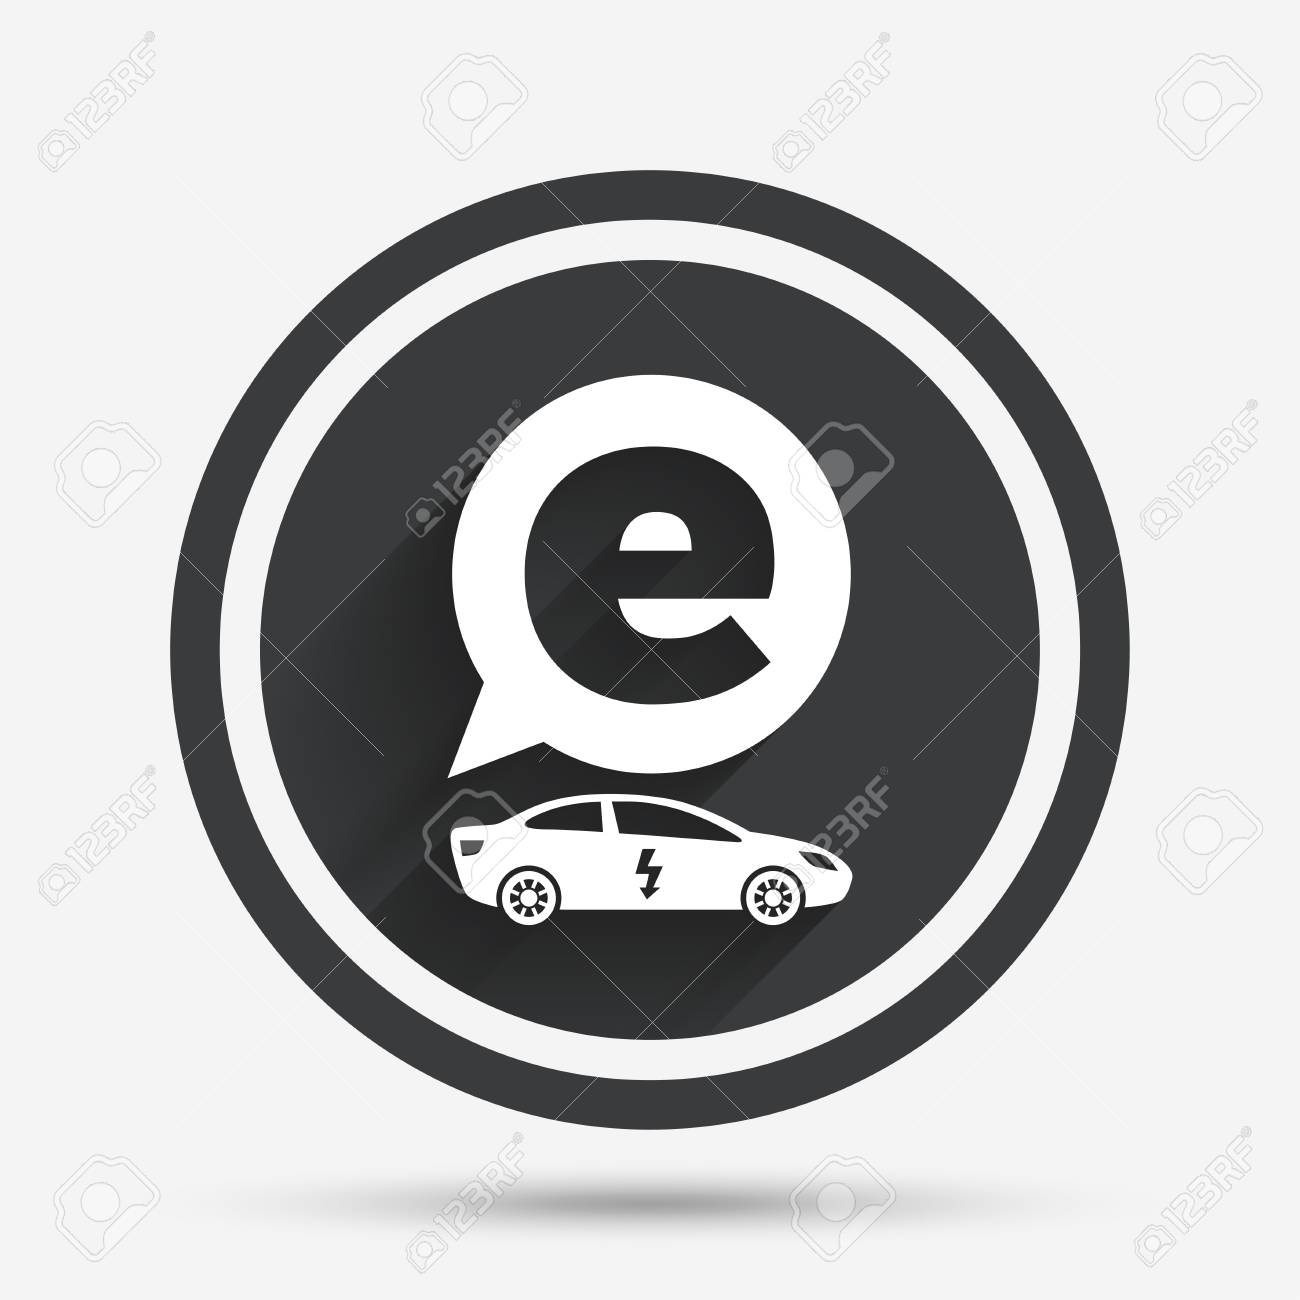 hight resolution of electric car sign icon sedan saloon symbol electric vehicle transport circle flat button